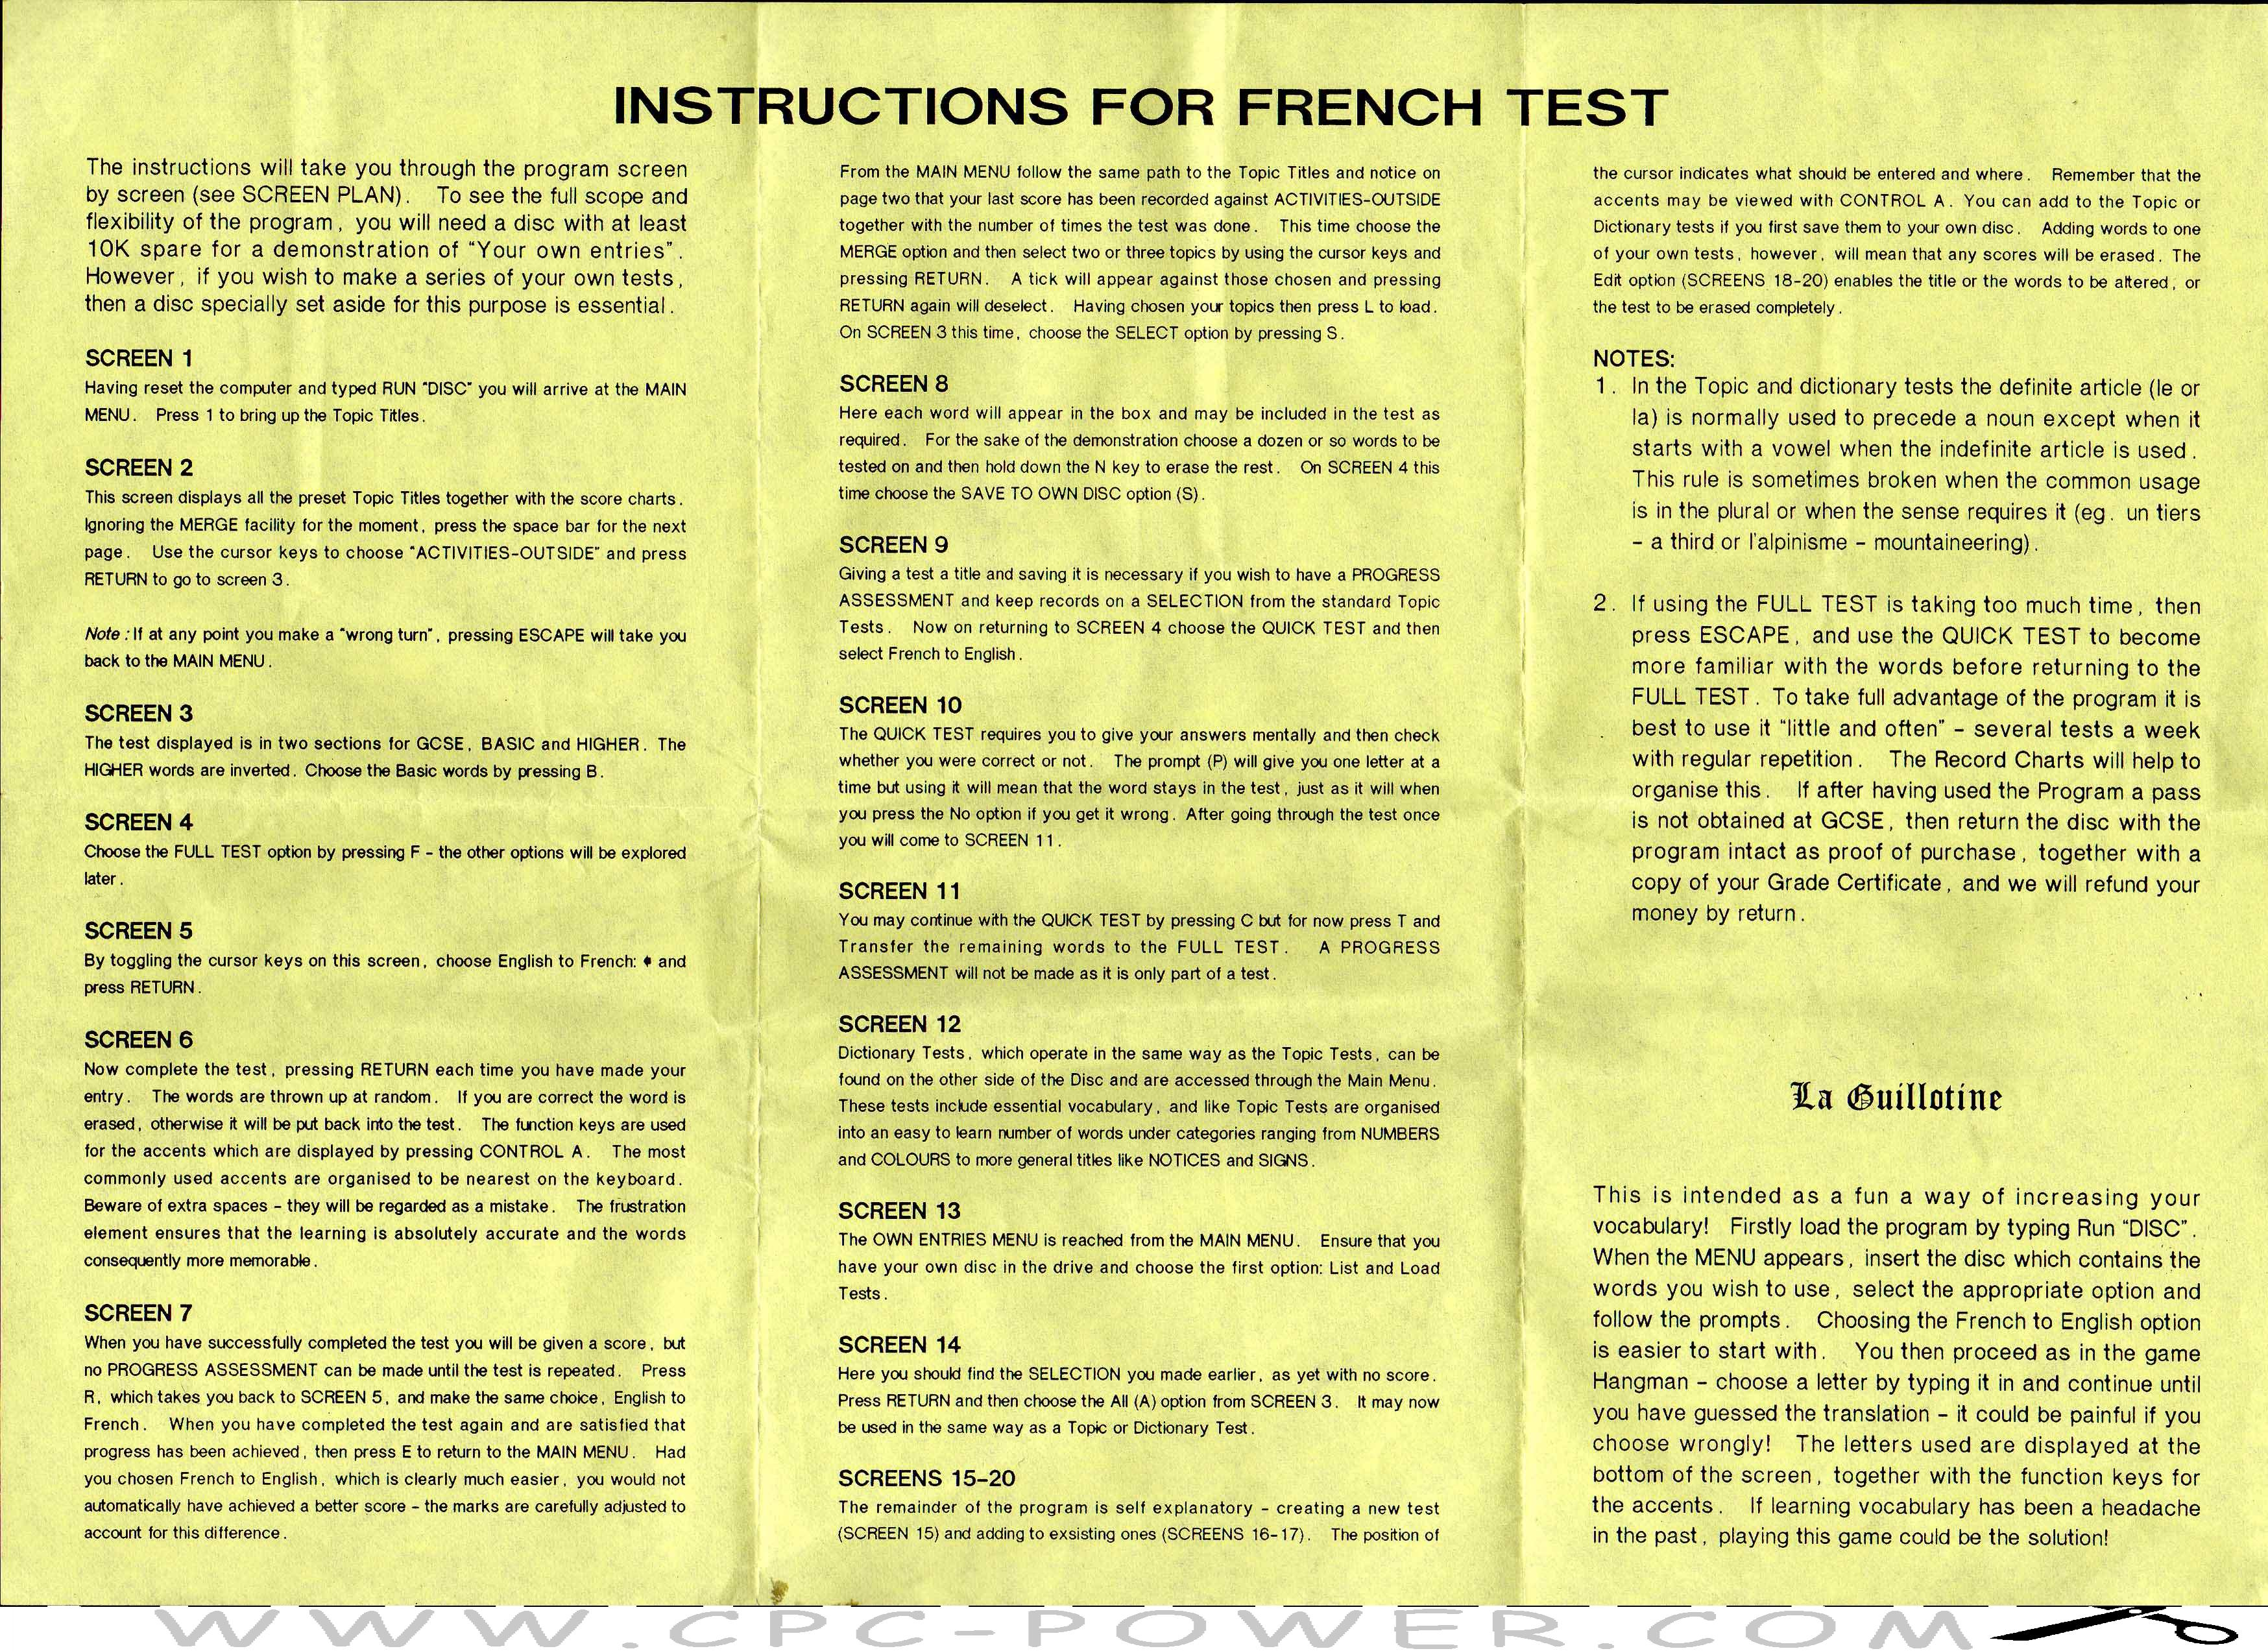 french test gmf programs 1990